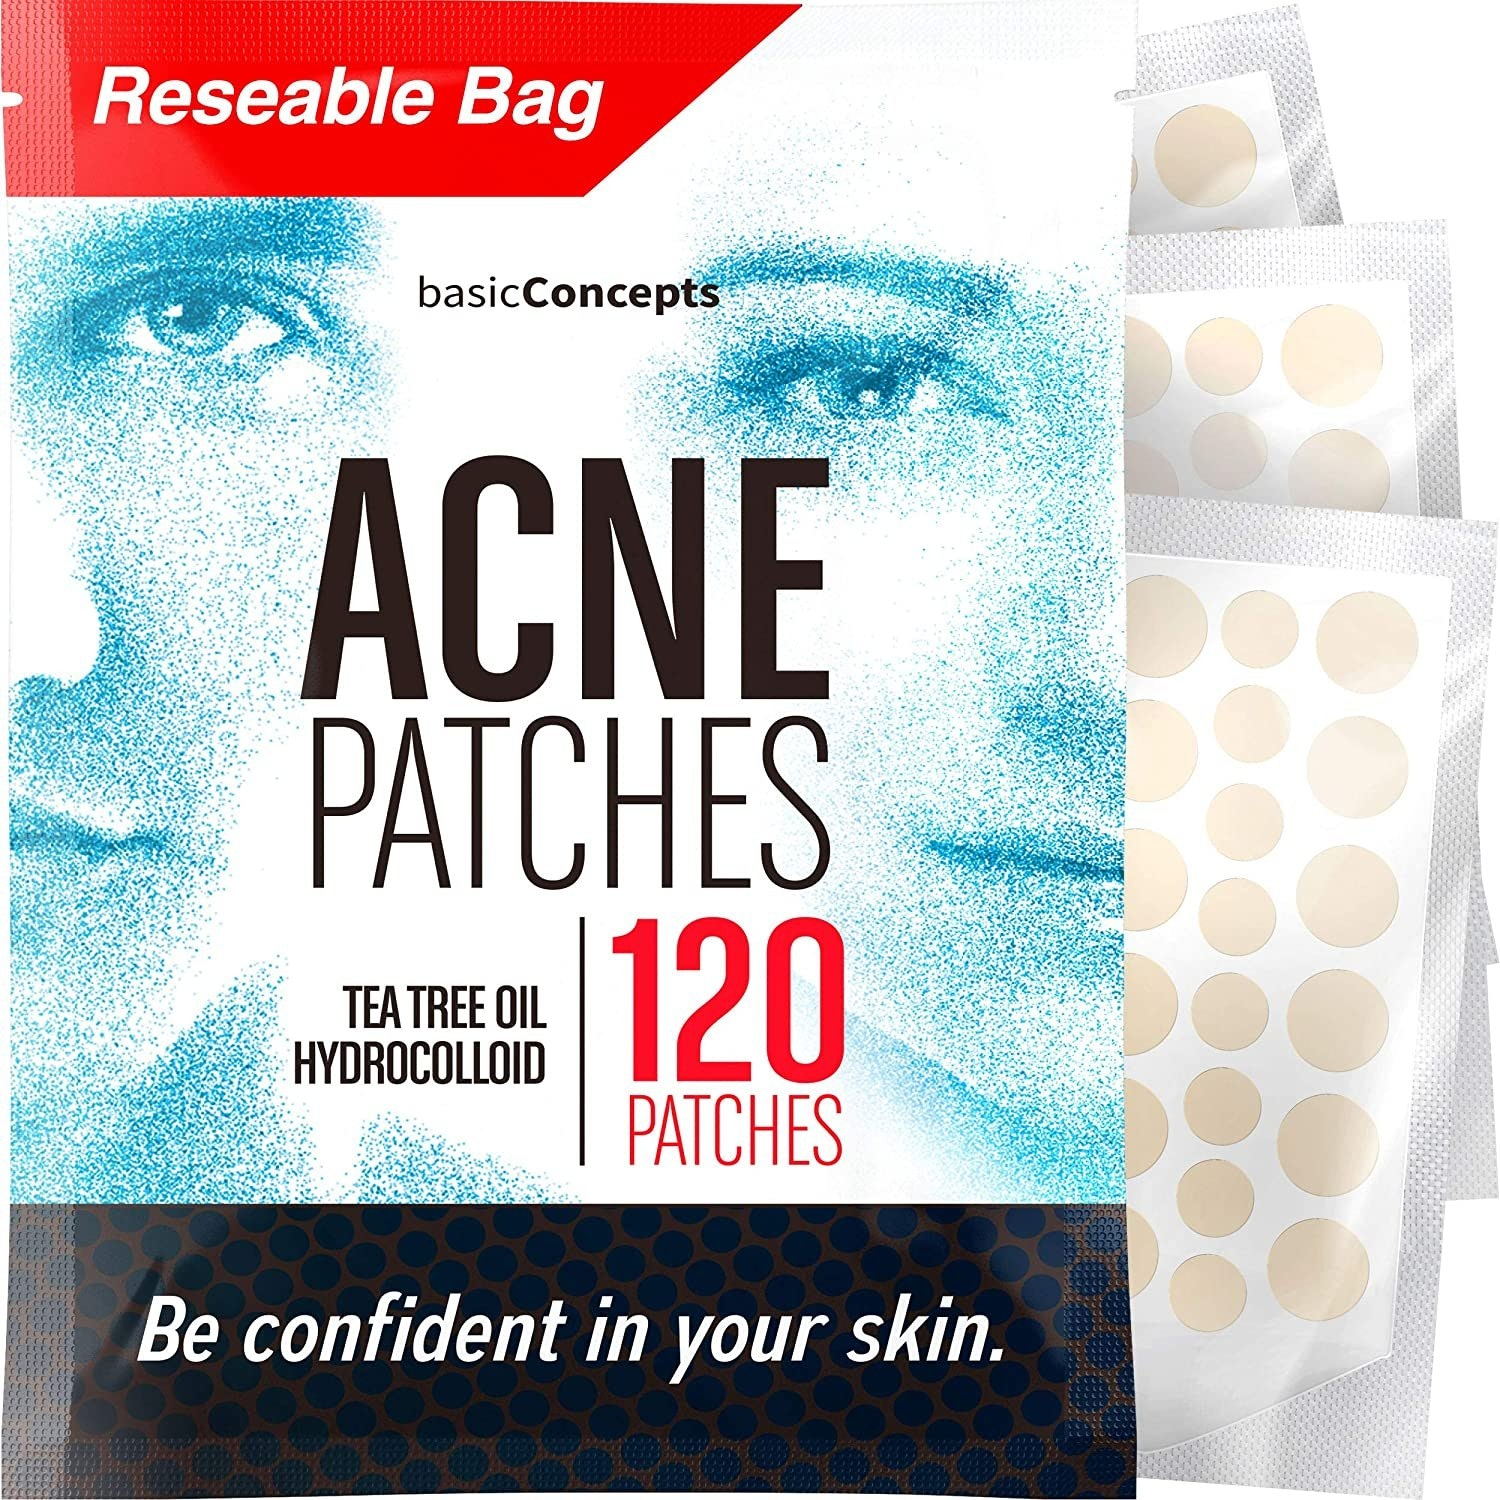 Basic Concepts Acne Patches (120 Pack)